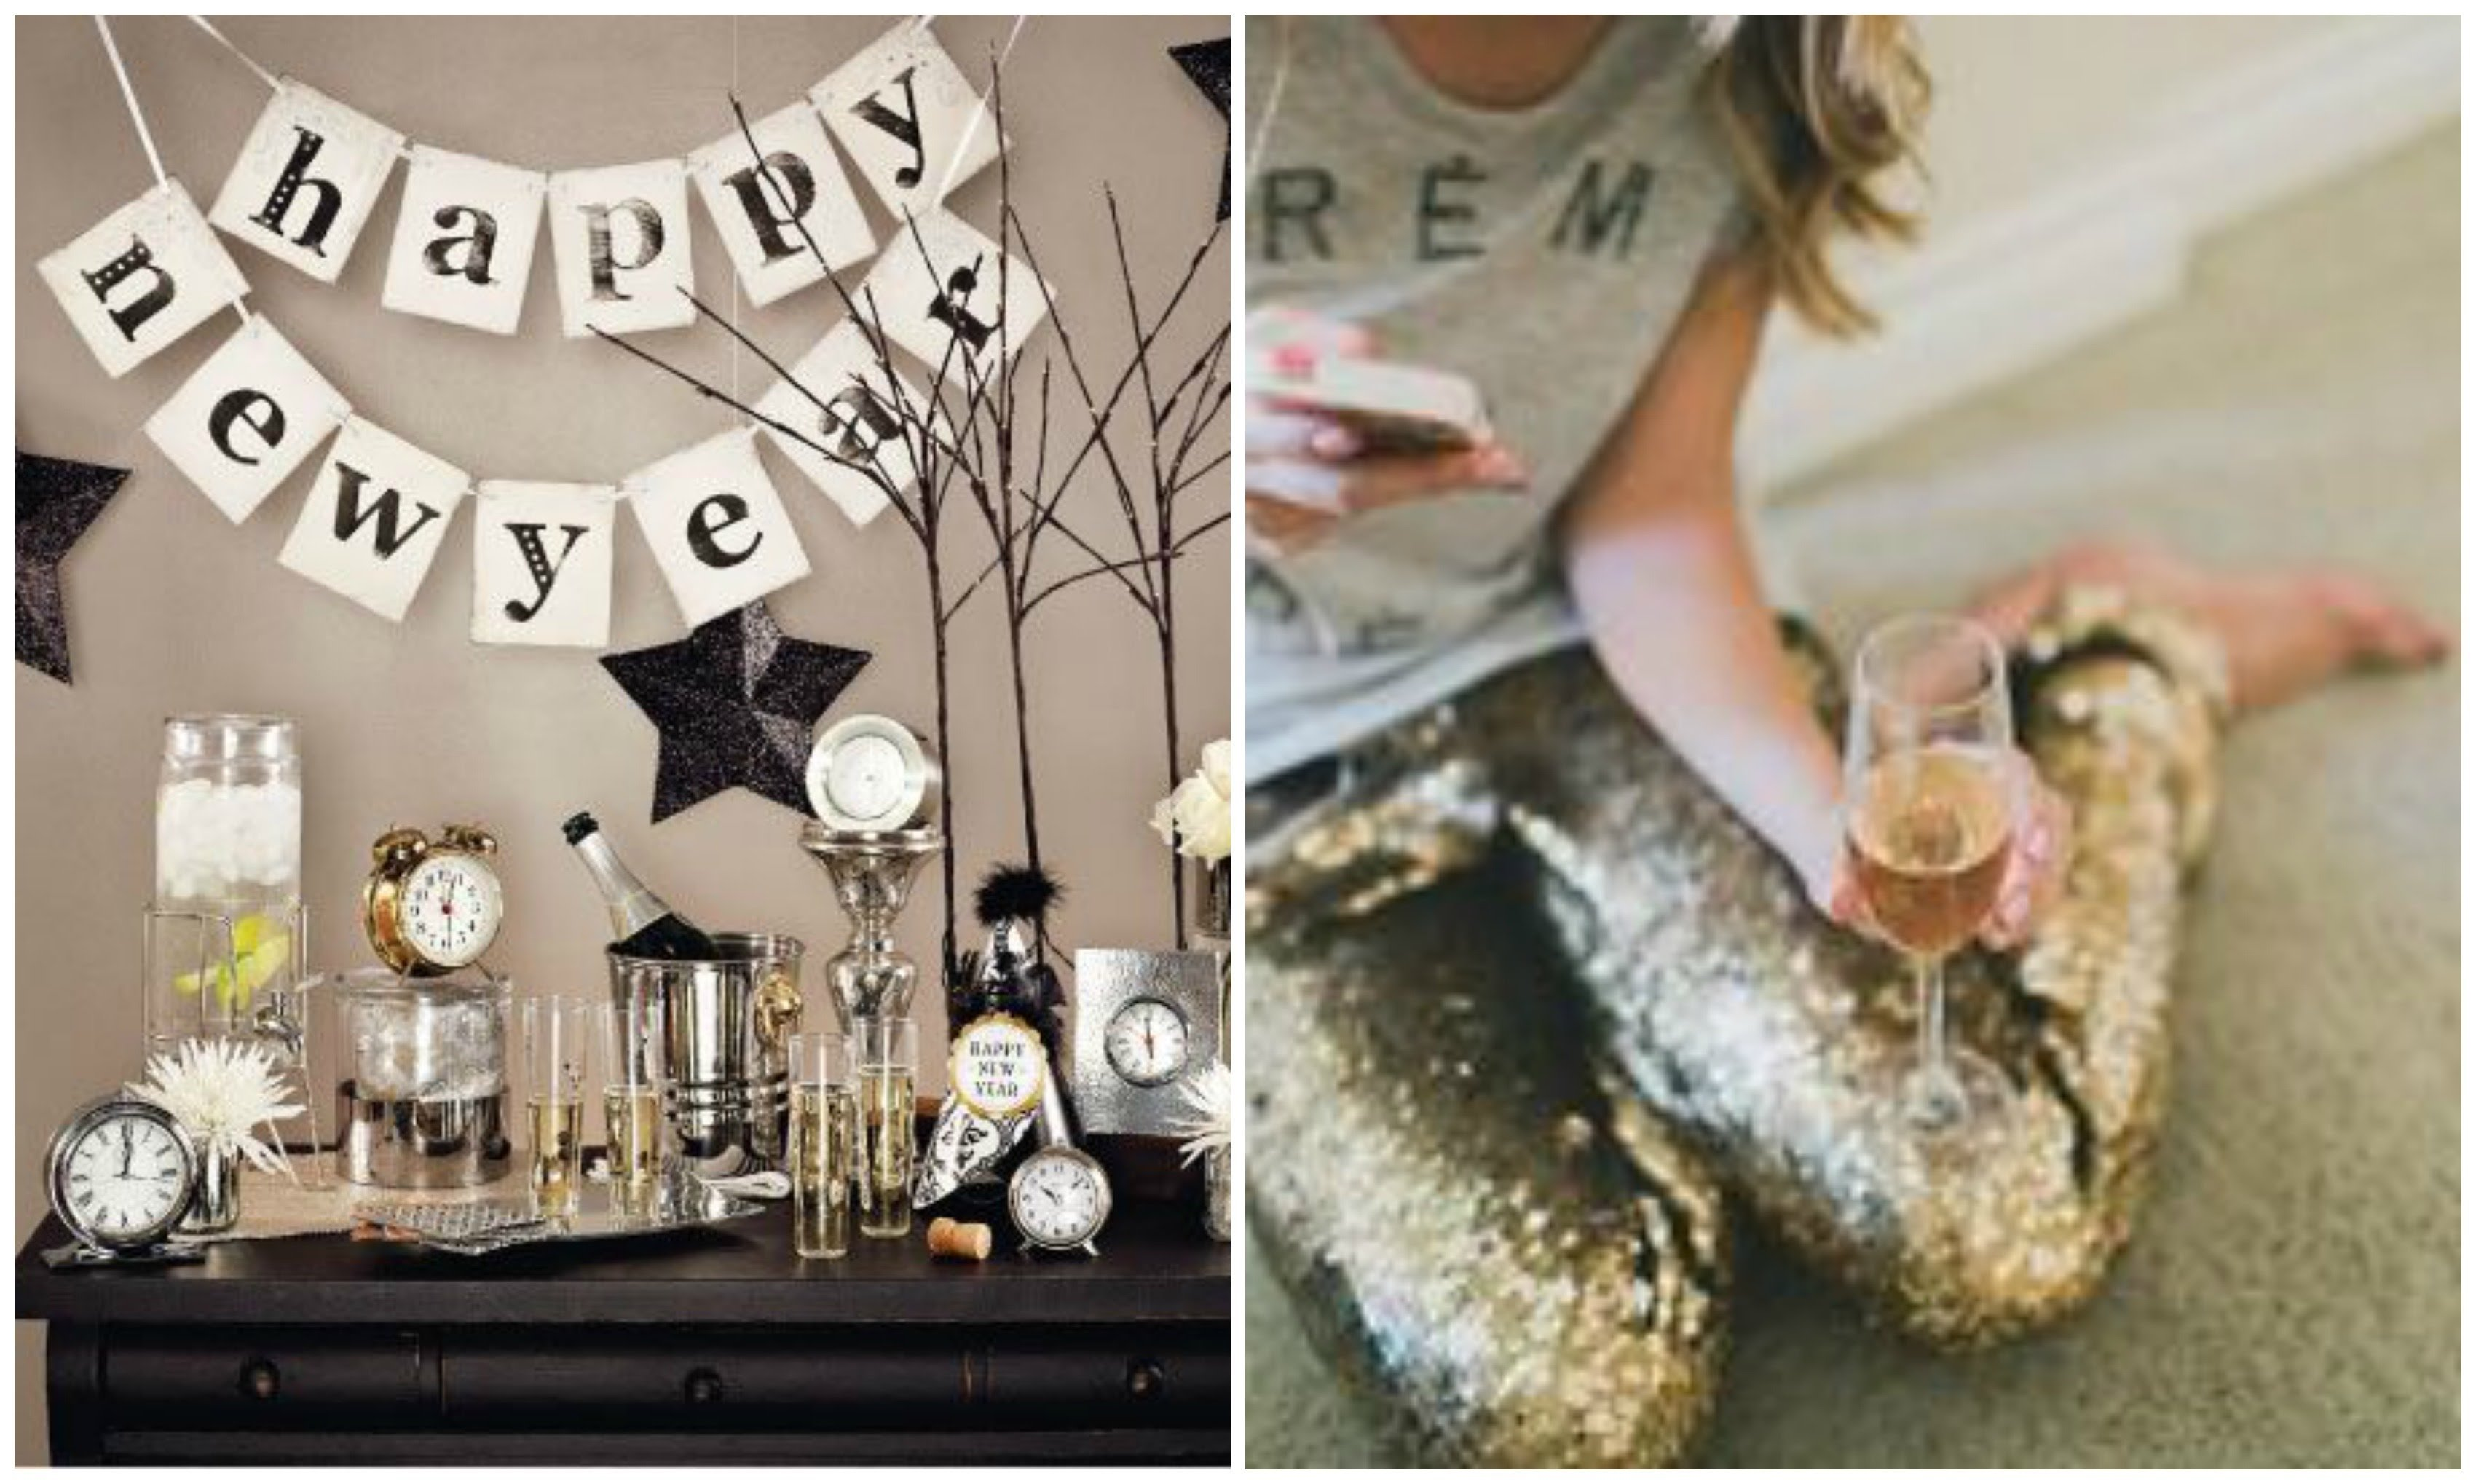 10 Attractive Ideas For New Years Eve Parties new years eve party ideas youtube 5 2020